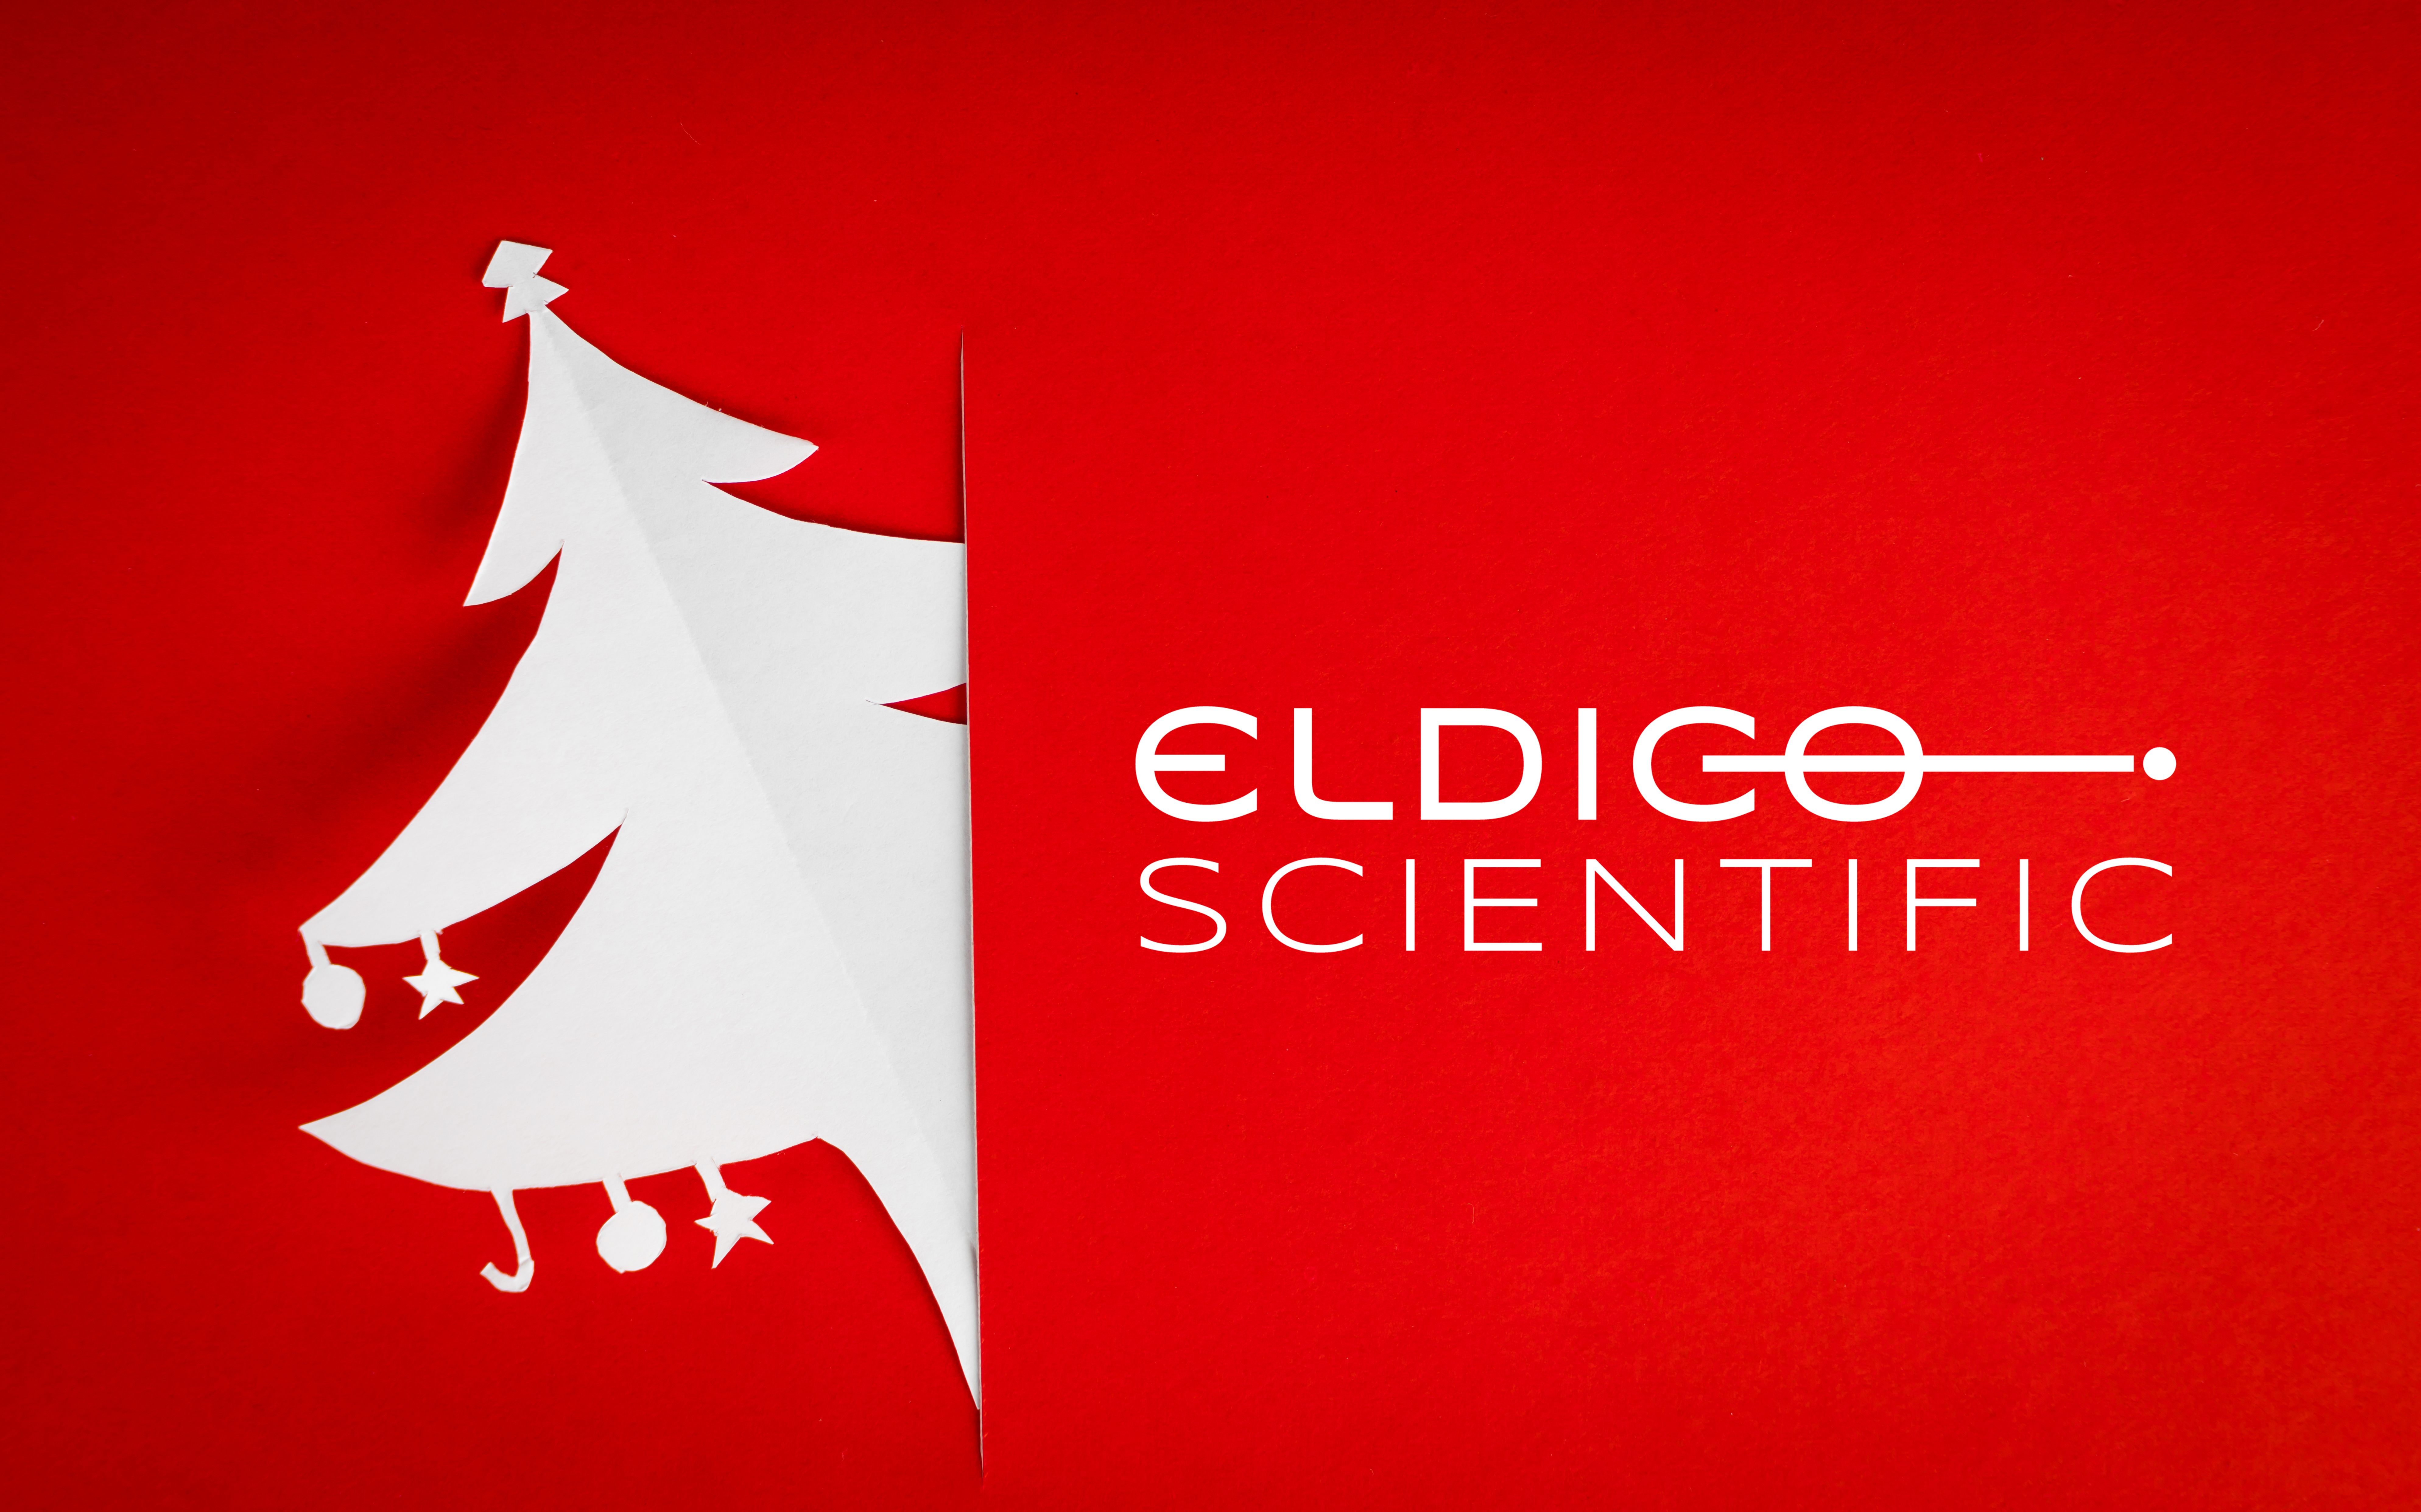 Season's greetings from ELDICO